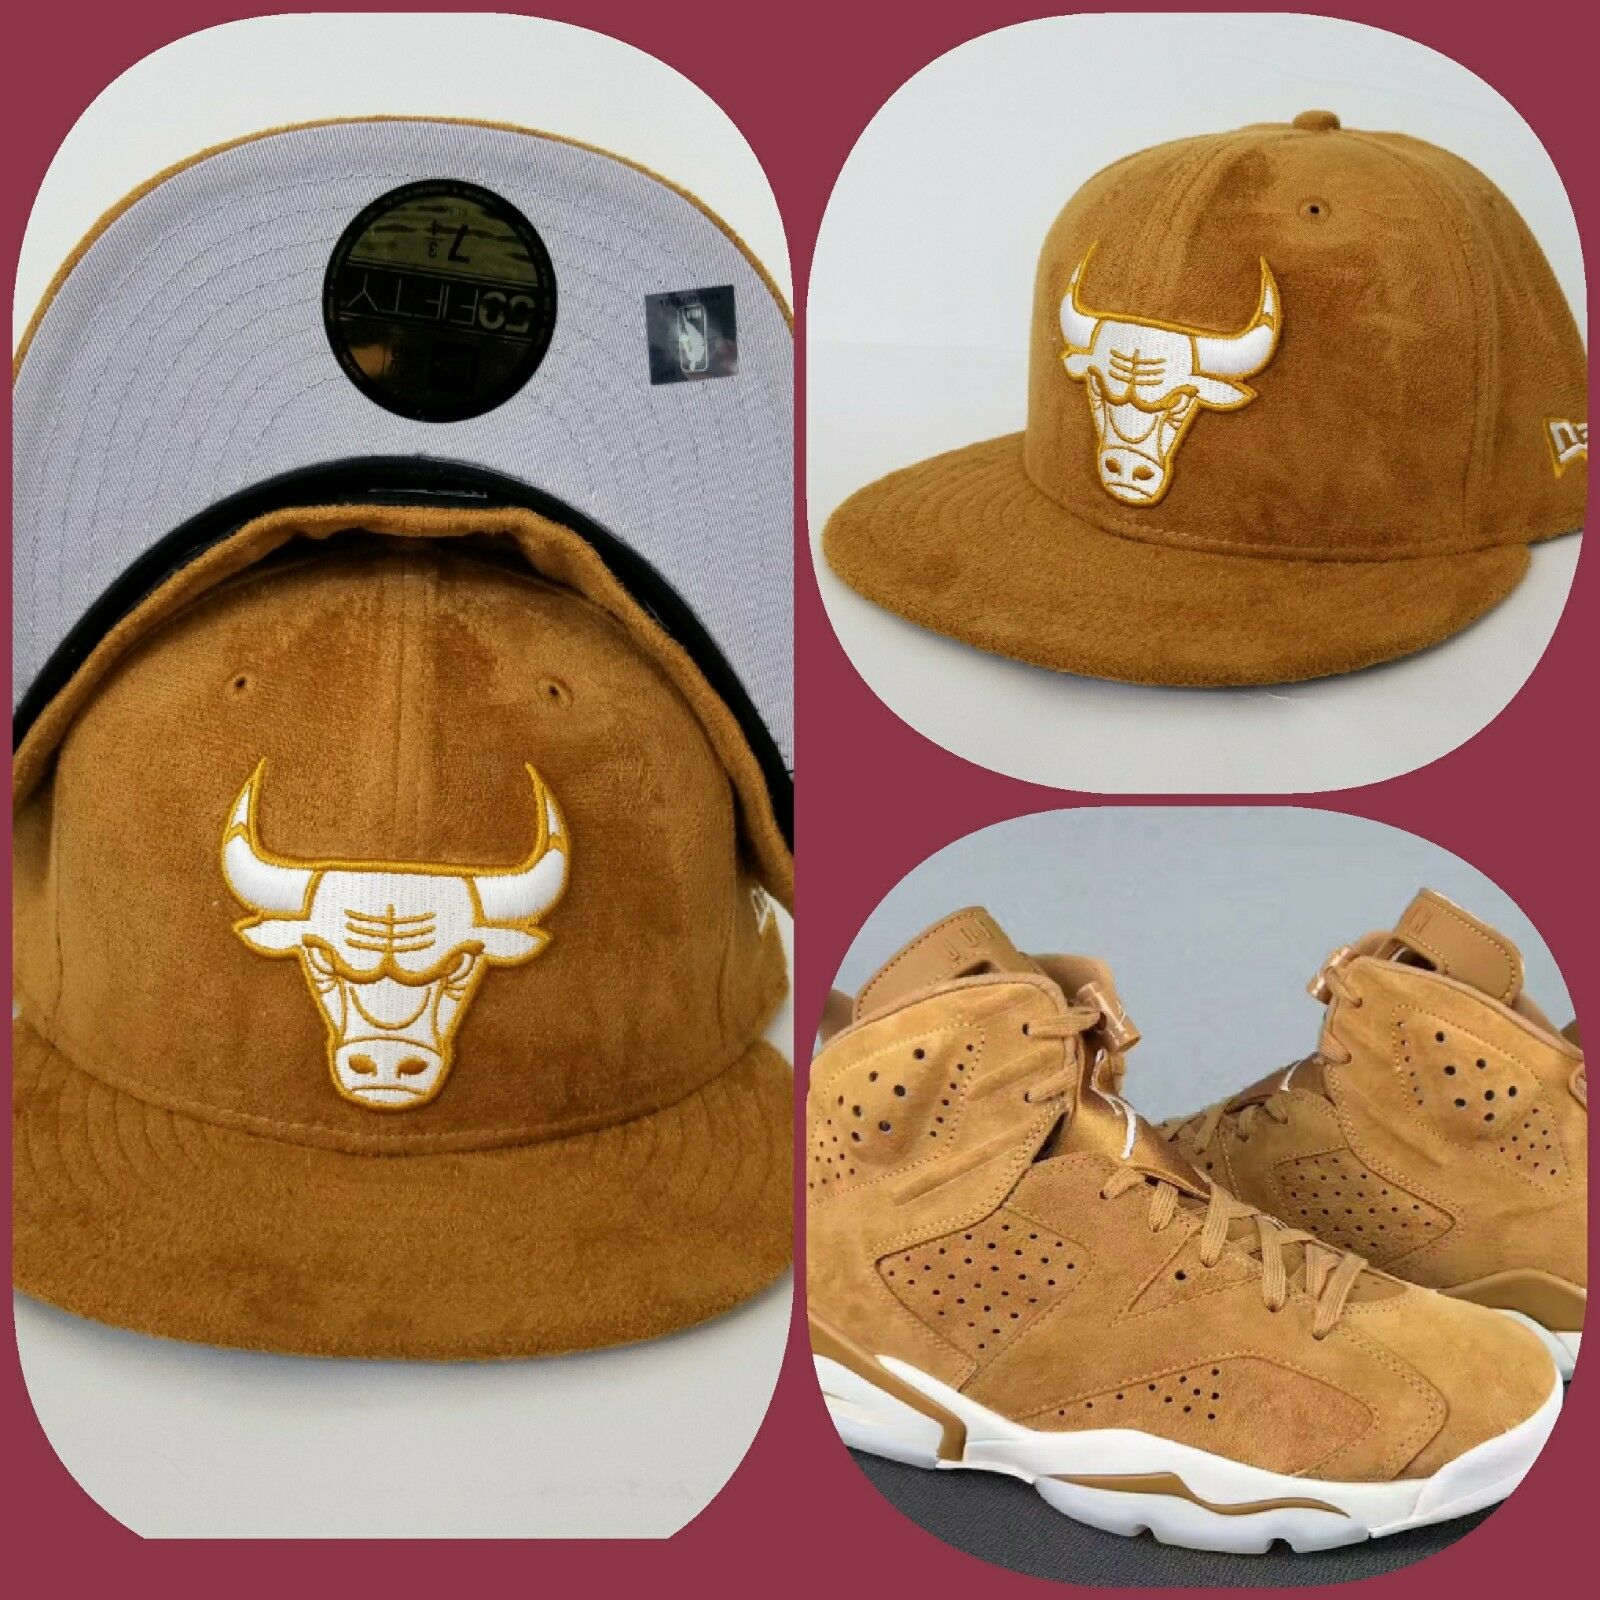 d16293bd570e Details about New Era Suede Chicago Bulls fitted hat Jordan 6 Wheat Golden  Harvest